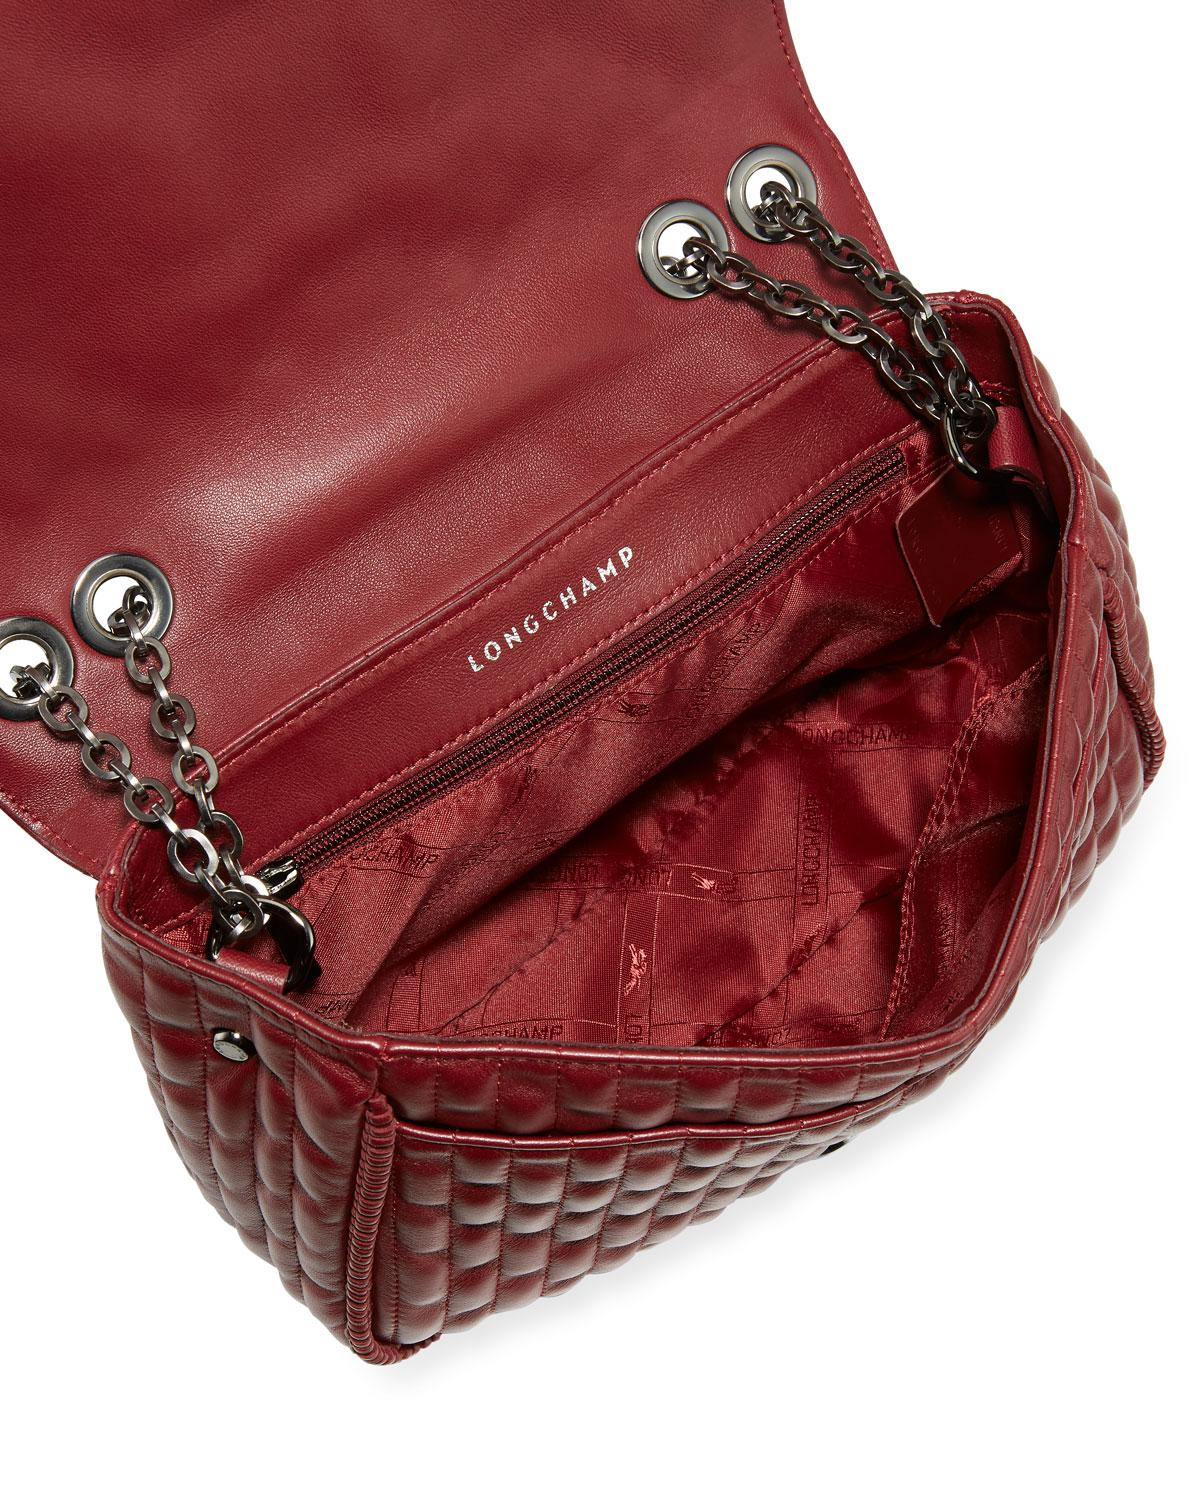 55705a8580e6 Lyst - Longchamp Amazon Small Leather Crossbody Bag in Red - Save 13%